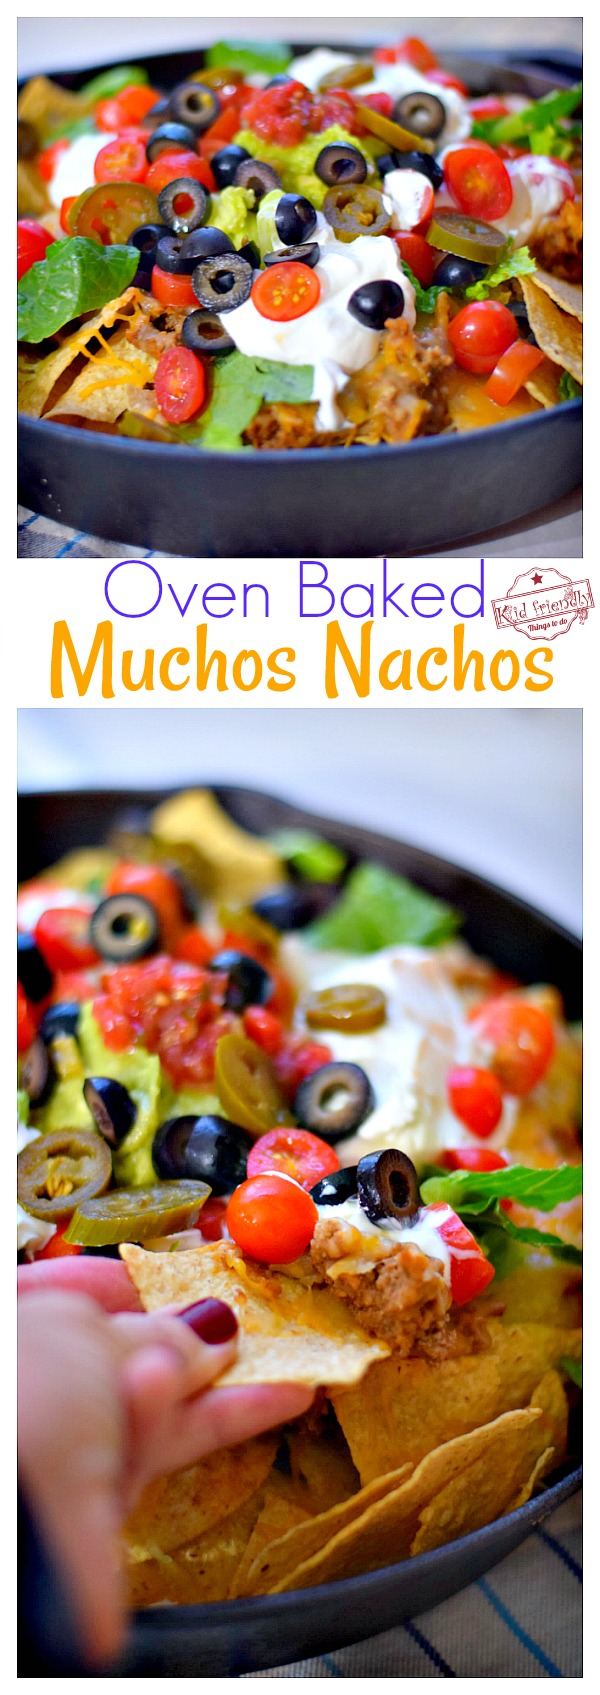 nacho recipe in oven